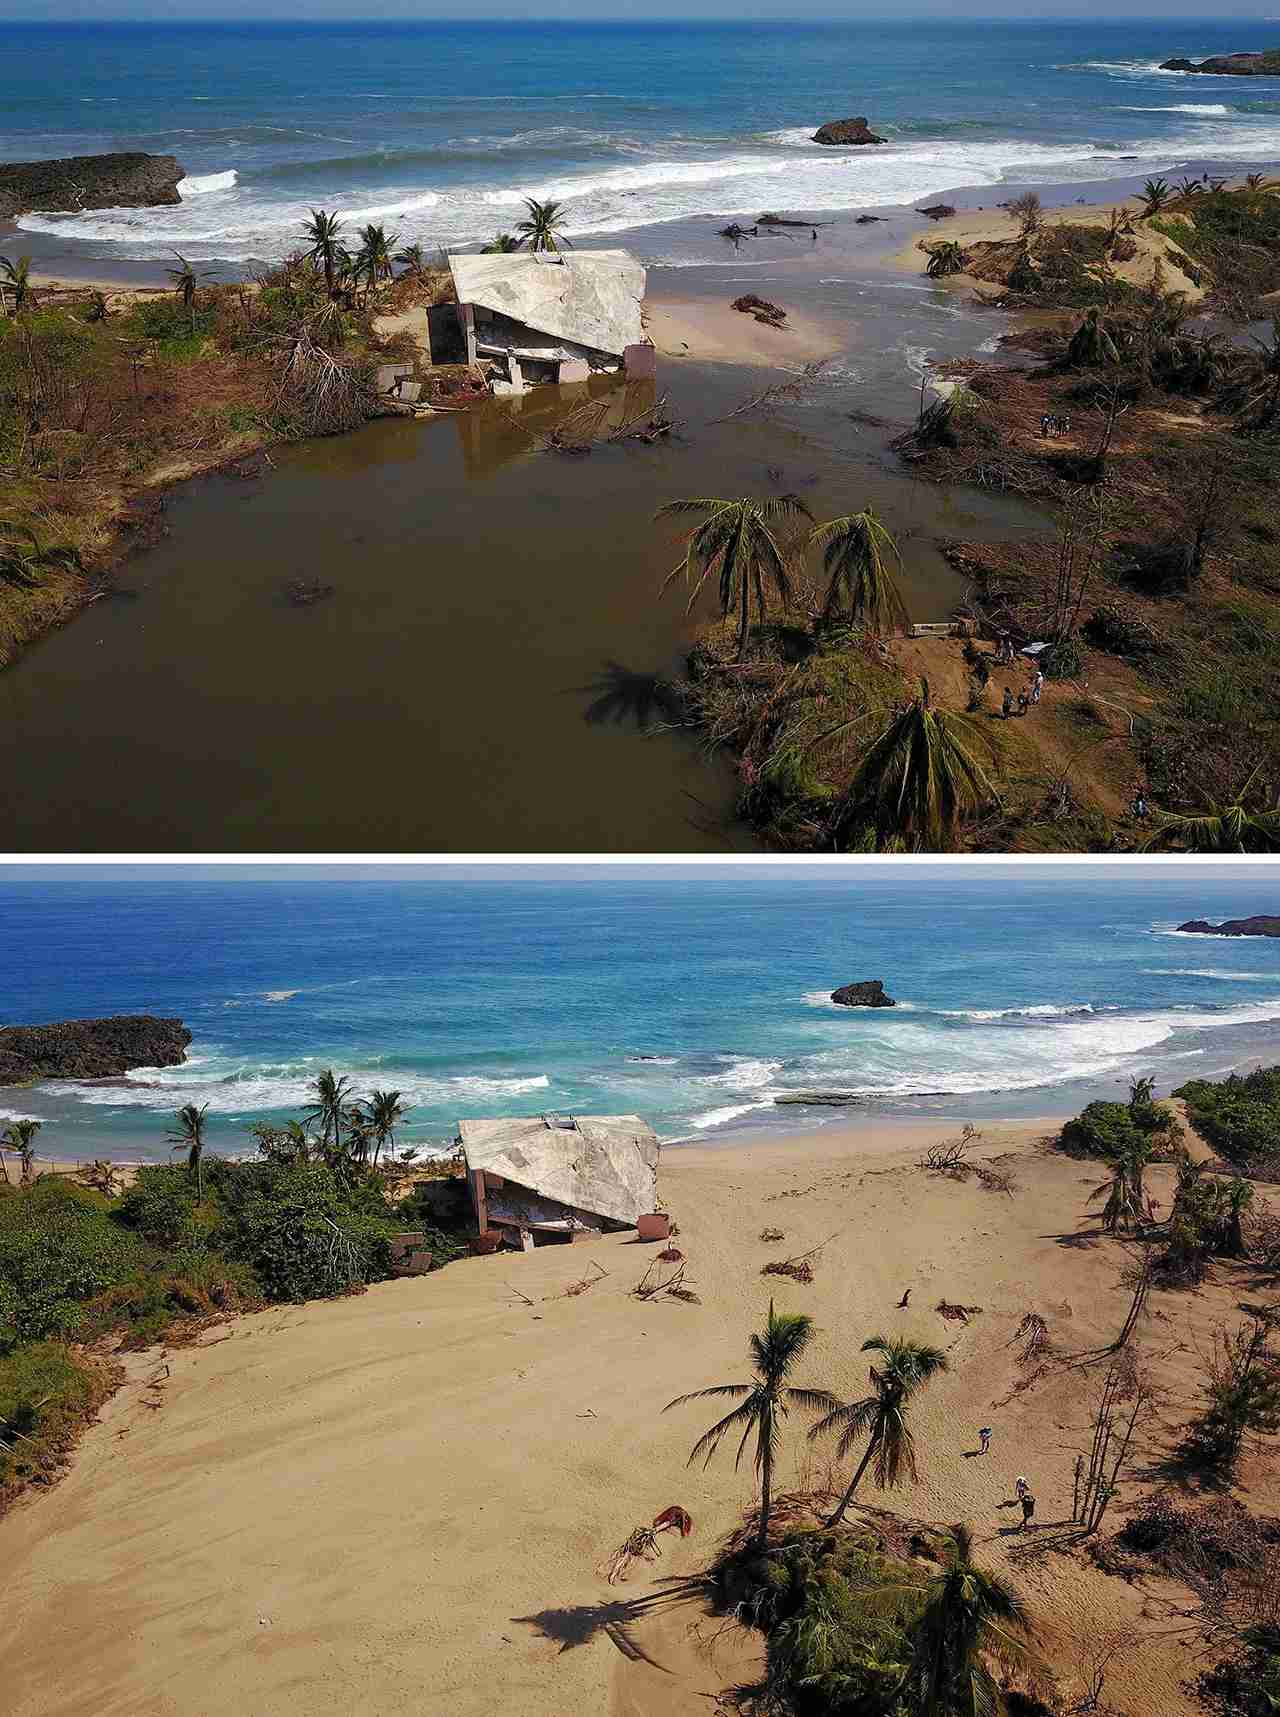 A house that was washed away by heavy surf during the passing of Hurricane Maria is seen in Manati, Puerto Rico on October 6, 2017 and (below) A house that was washed away by heavy surf during the passing of Hurricane Maria is seen six months after the Hurricane affected the island in Manati, Puerto Rico, on March 18, 2018. (Photo by RICARDO ARDUENGO/AFP/Getty Images)